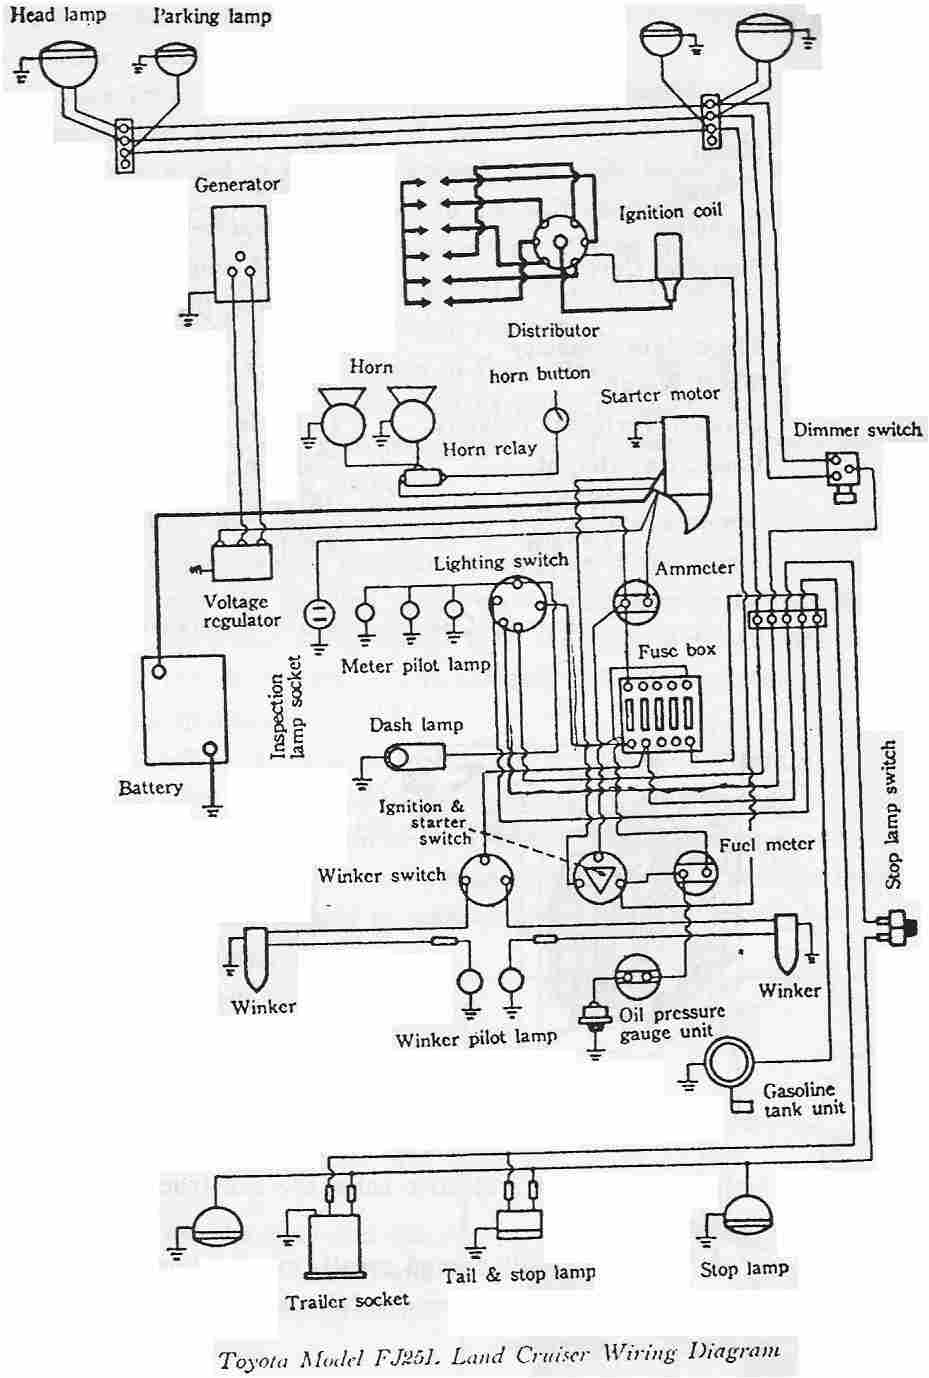 Toyota Land Cruiser FJ25 Electrical Wiring Diagram toyota vdj79 wiring diagram toyota wiring diagrams instruction vdj79 wiring diagram at gsmx.co